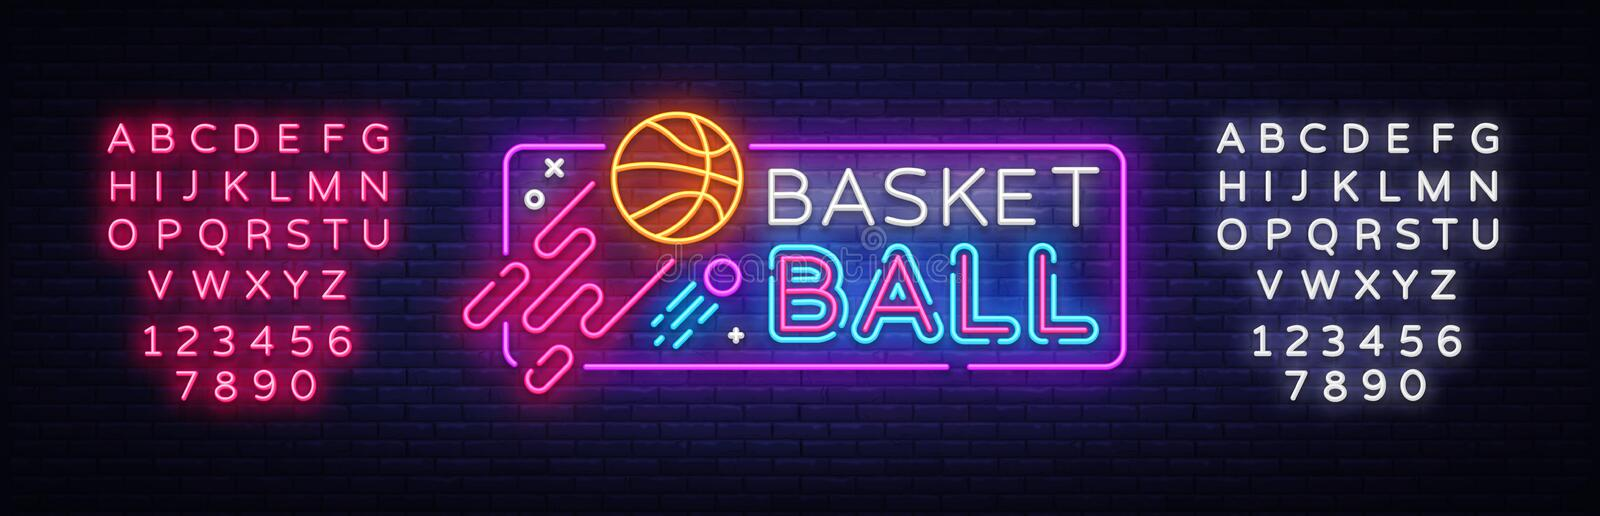 Basketball neon sign vector. Basketball Design template neon sign, light banner, neon signboard, nightly bright vector illustration